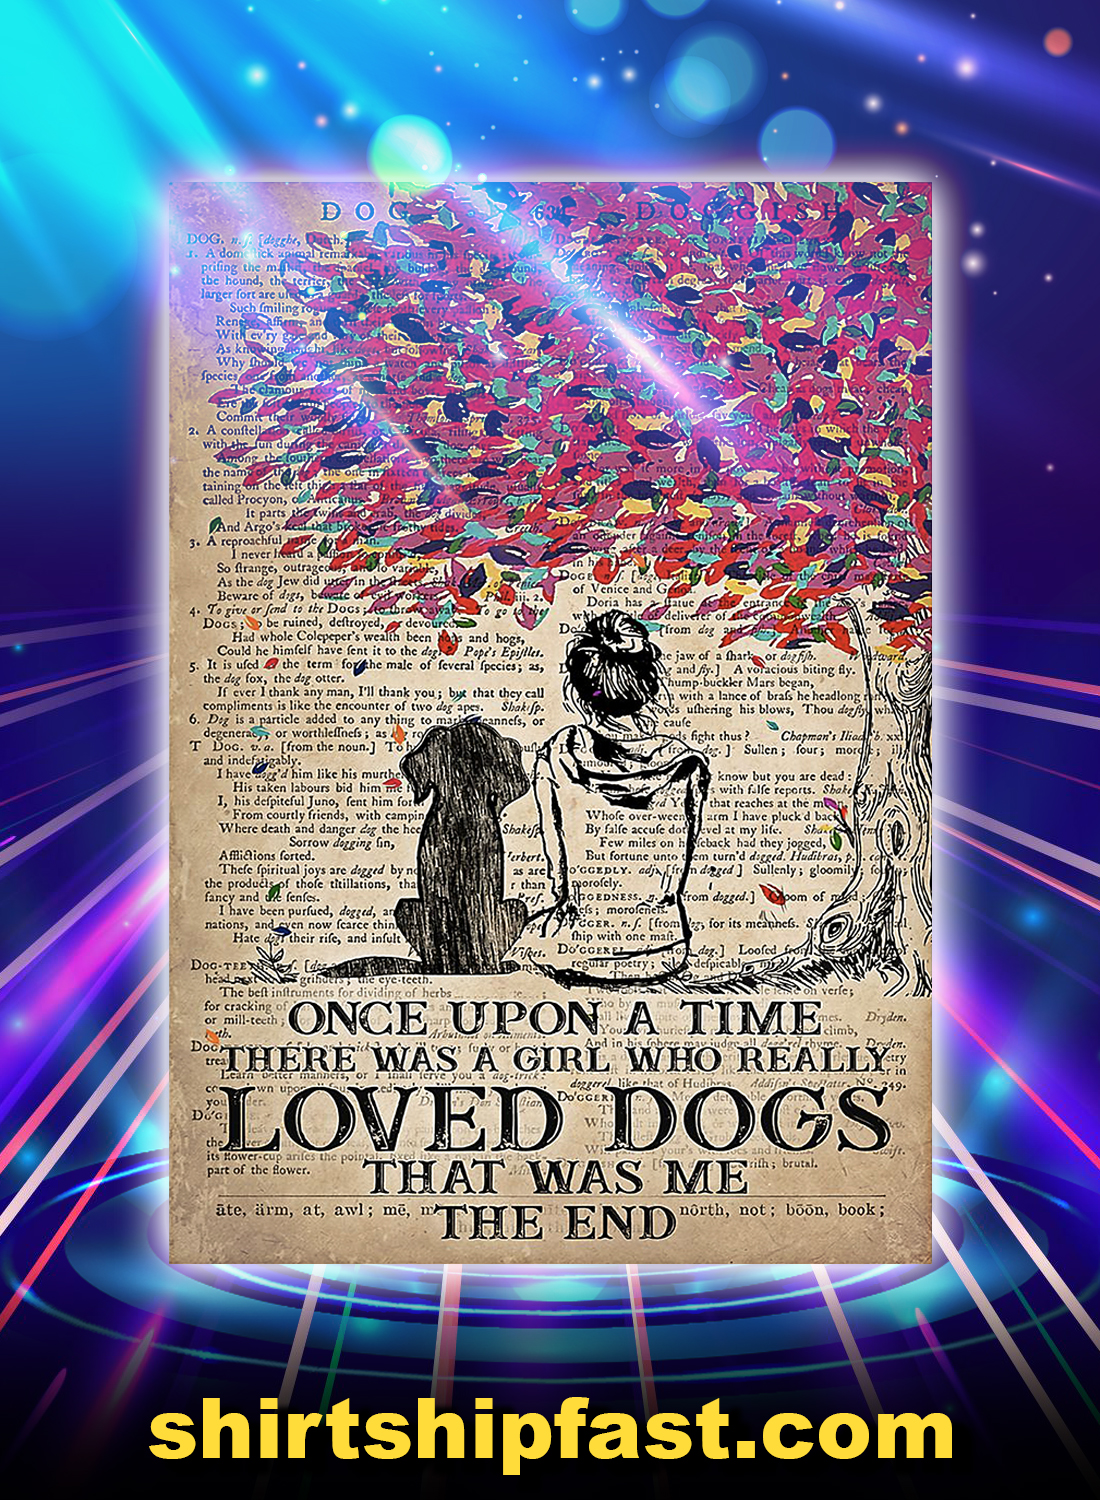 Once upon a time there was a girl loved dogs poster - A4